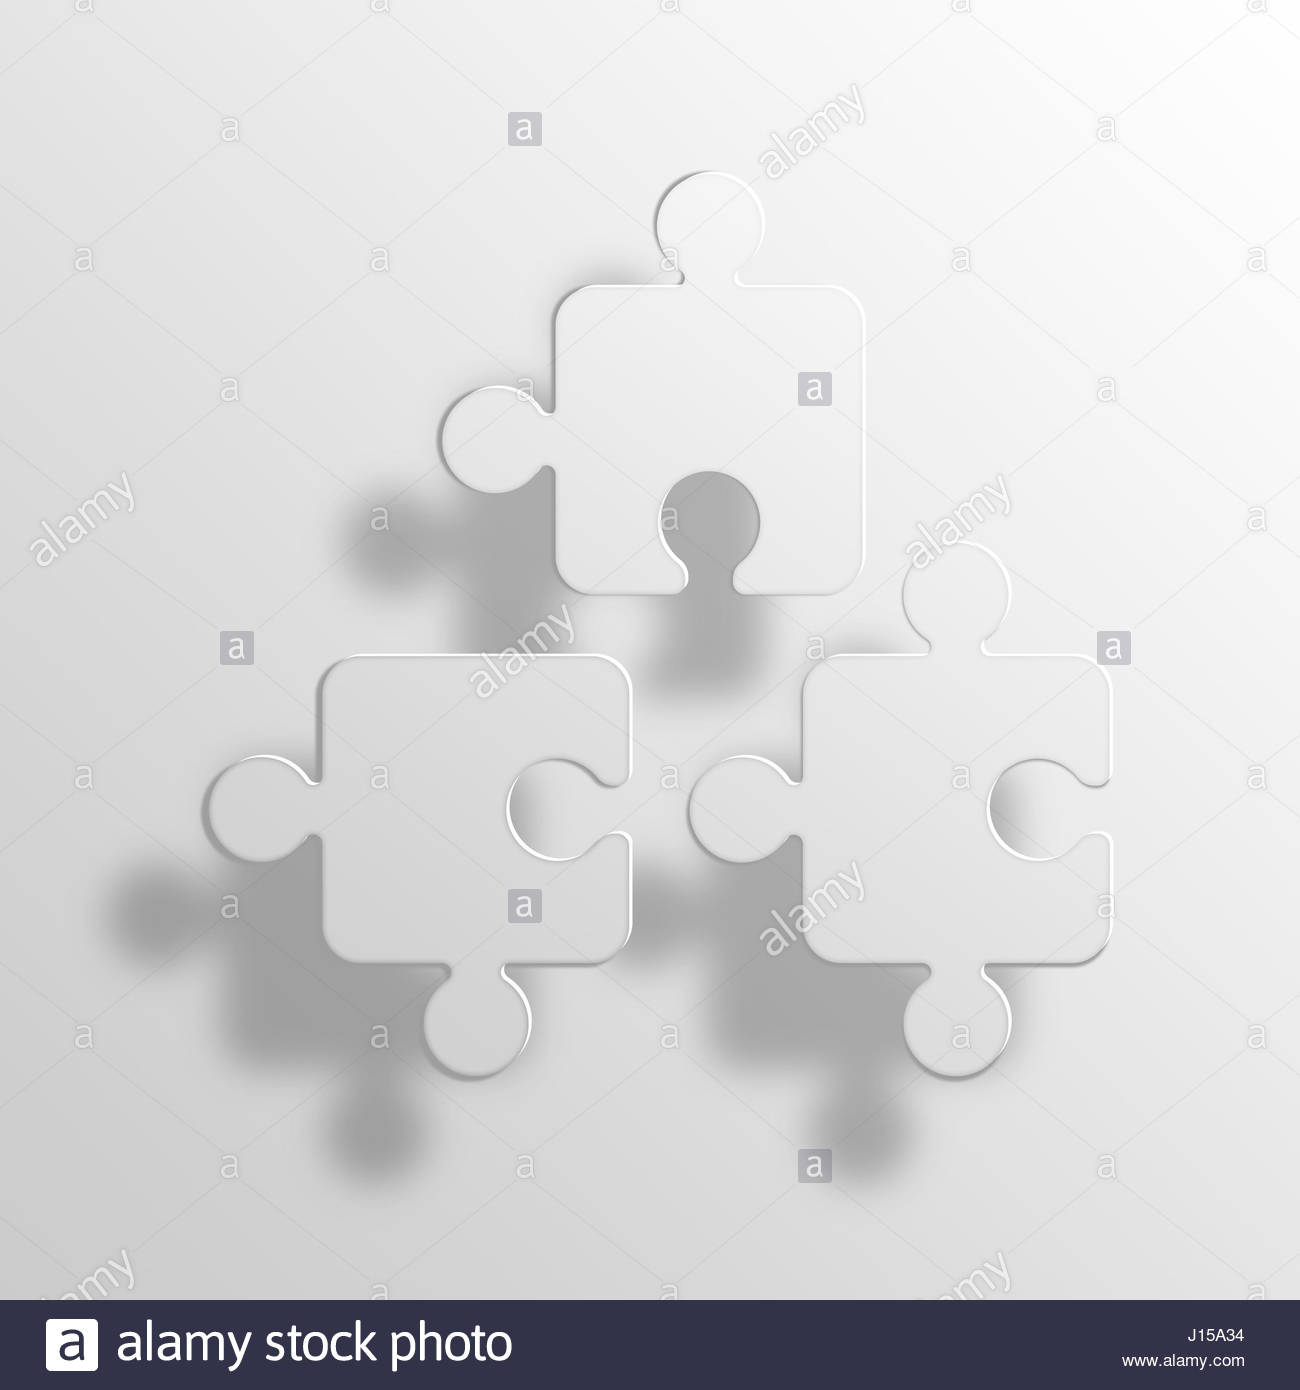 Puzzle Pieces 3D Paper Icon Symbol Business Concept No4295